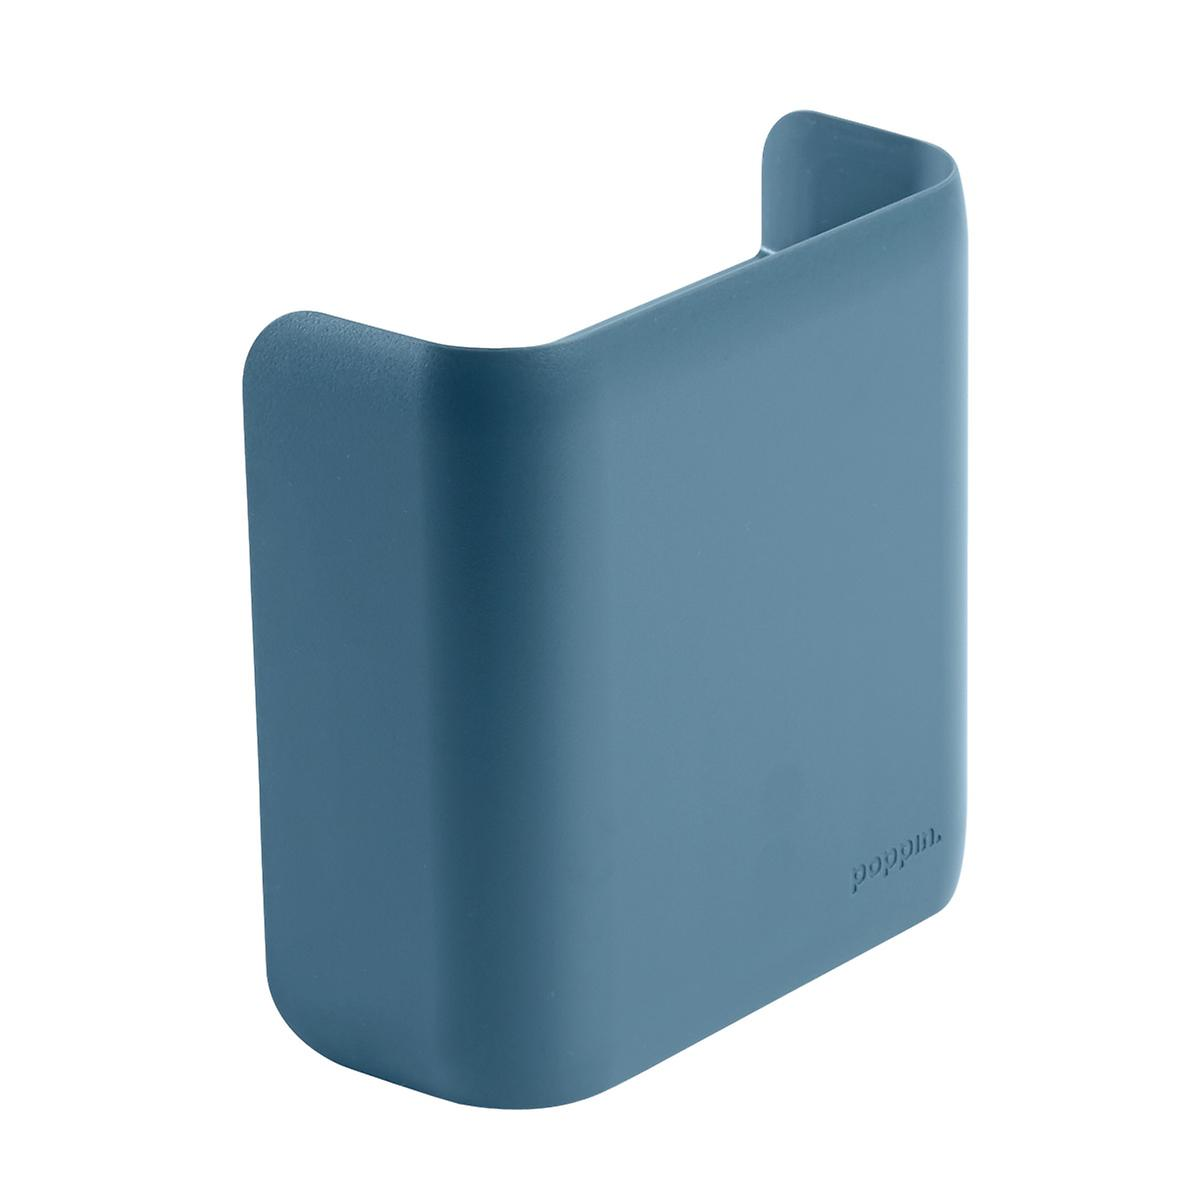 Slate Blue Poppin Magnetic Divided Pencil Cup